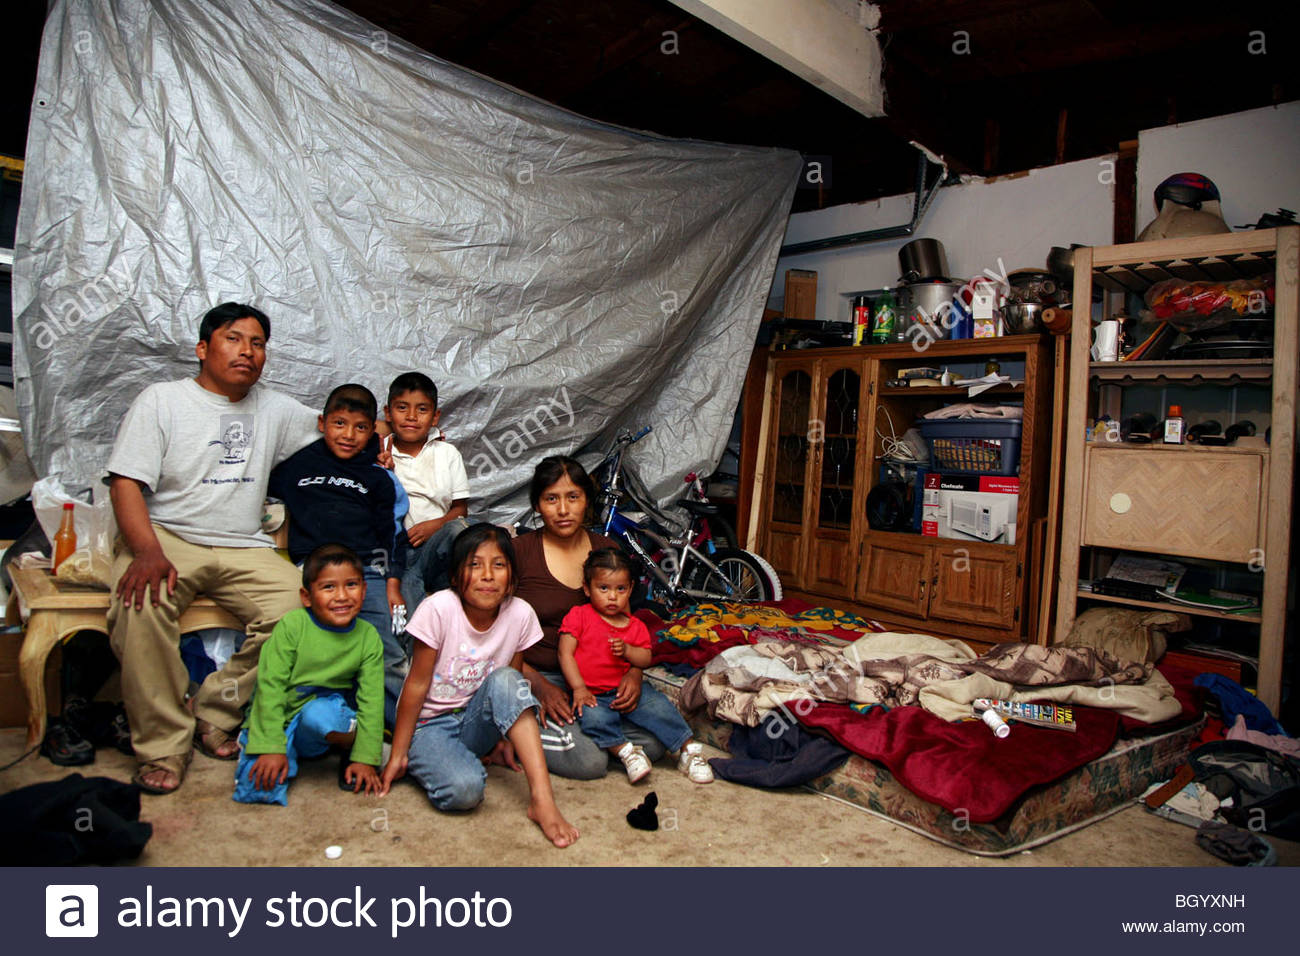 Immigrant Mexican Family Living In A Garage In California